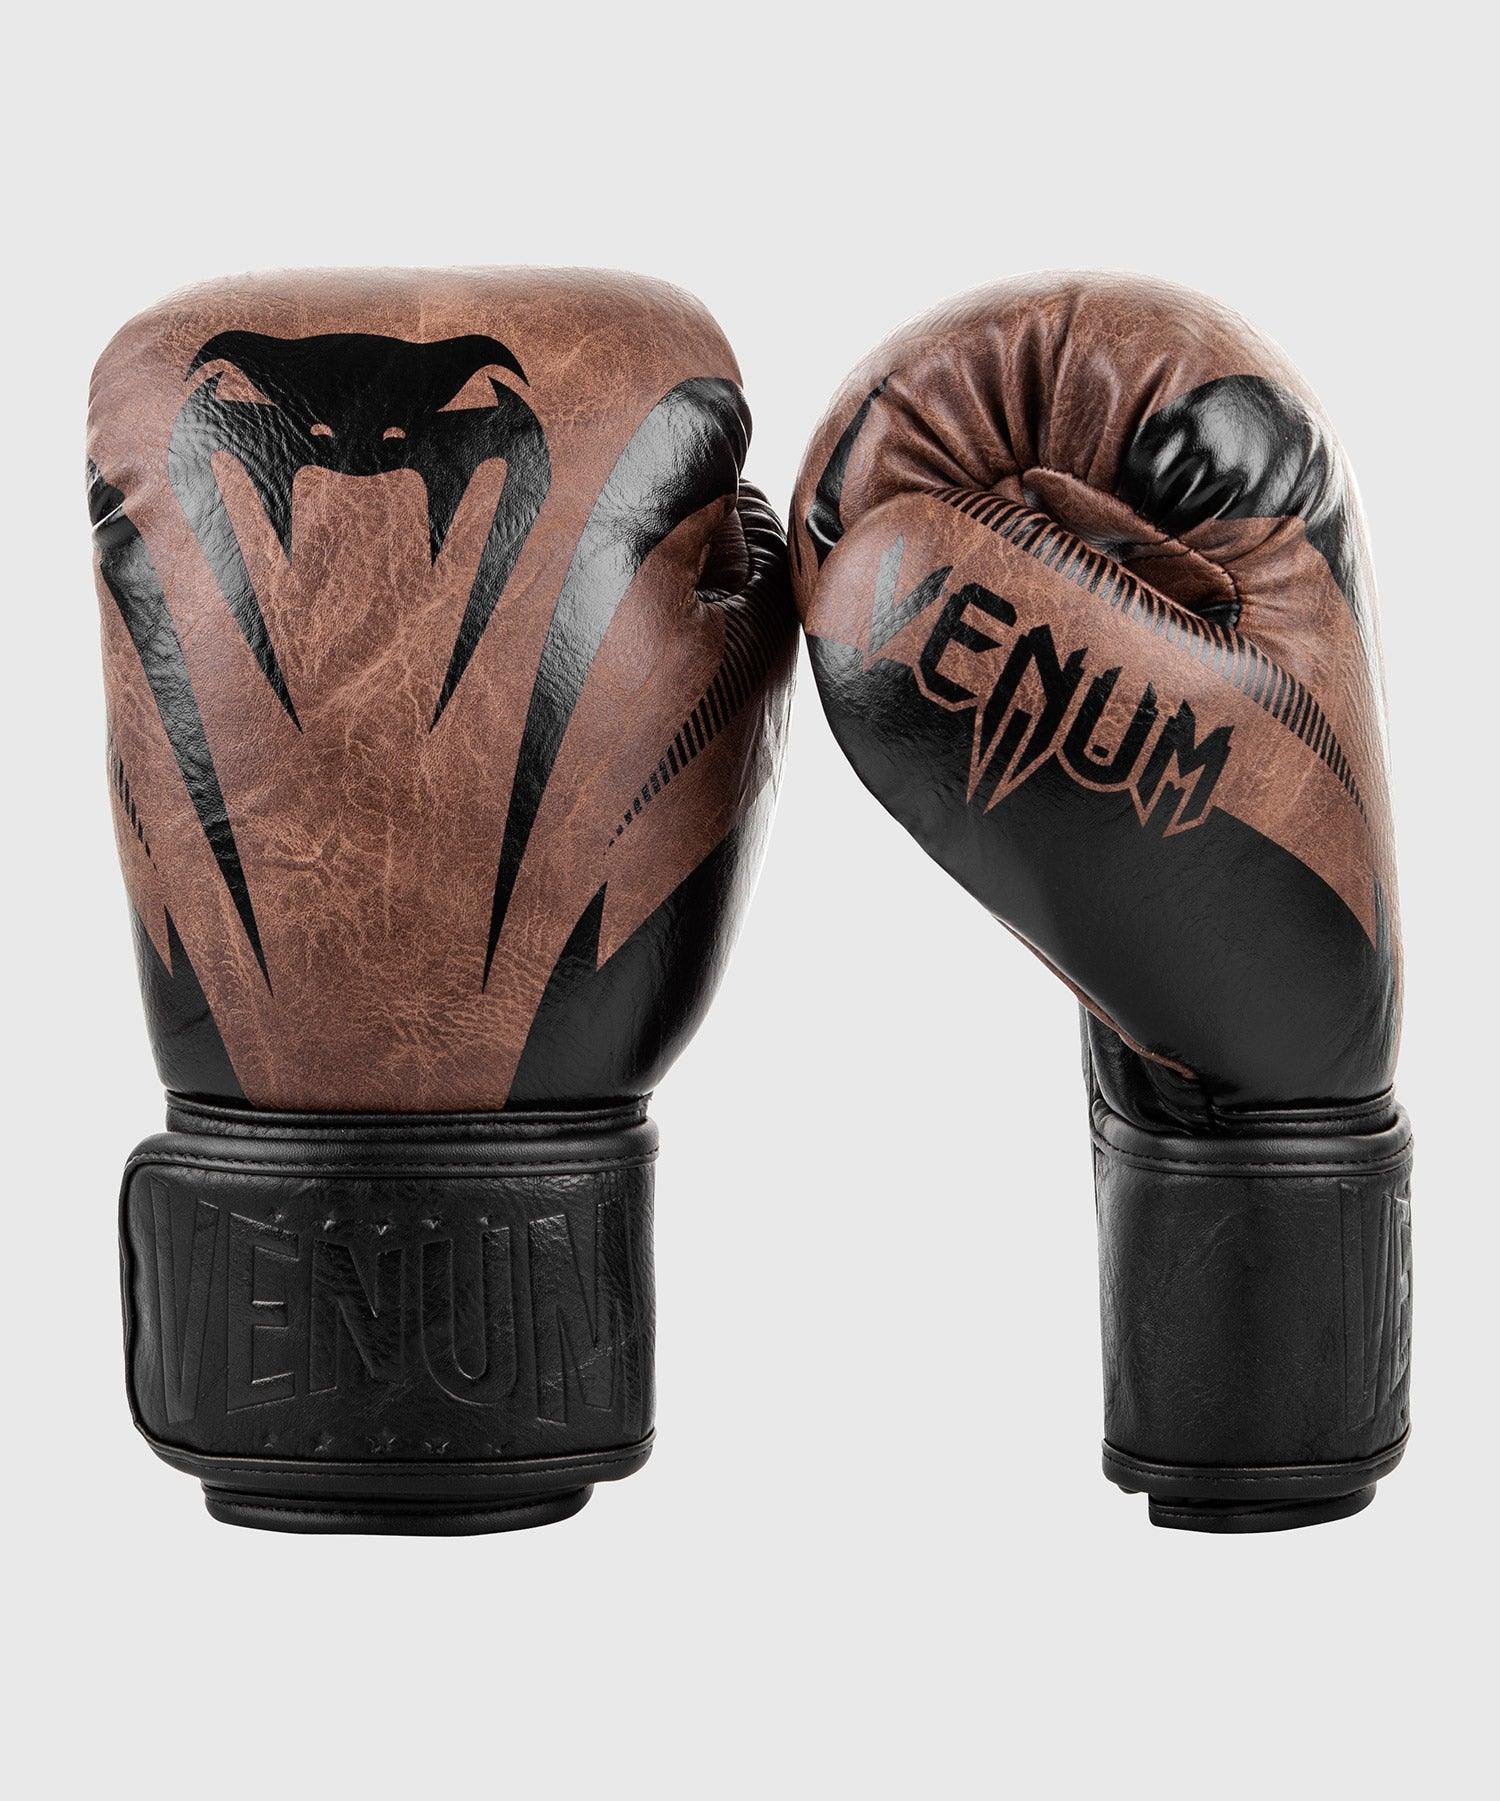 Venum Impact Boxing Gloves - Black/Brown picture 1